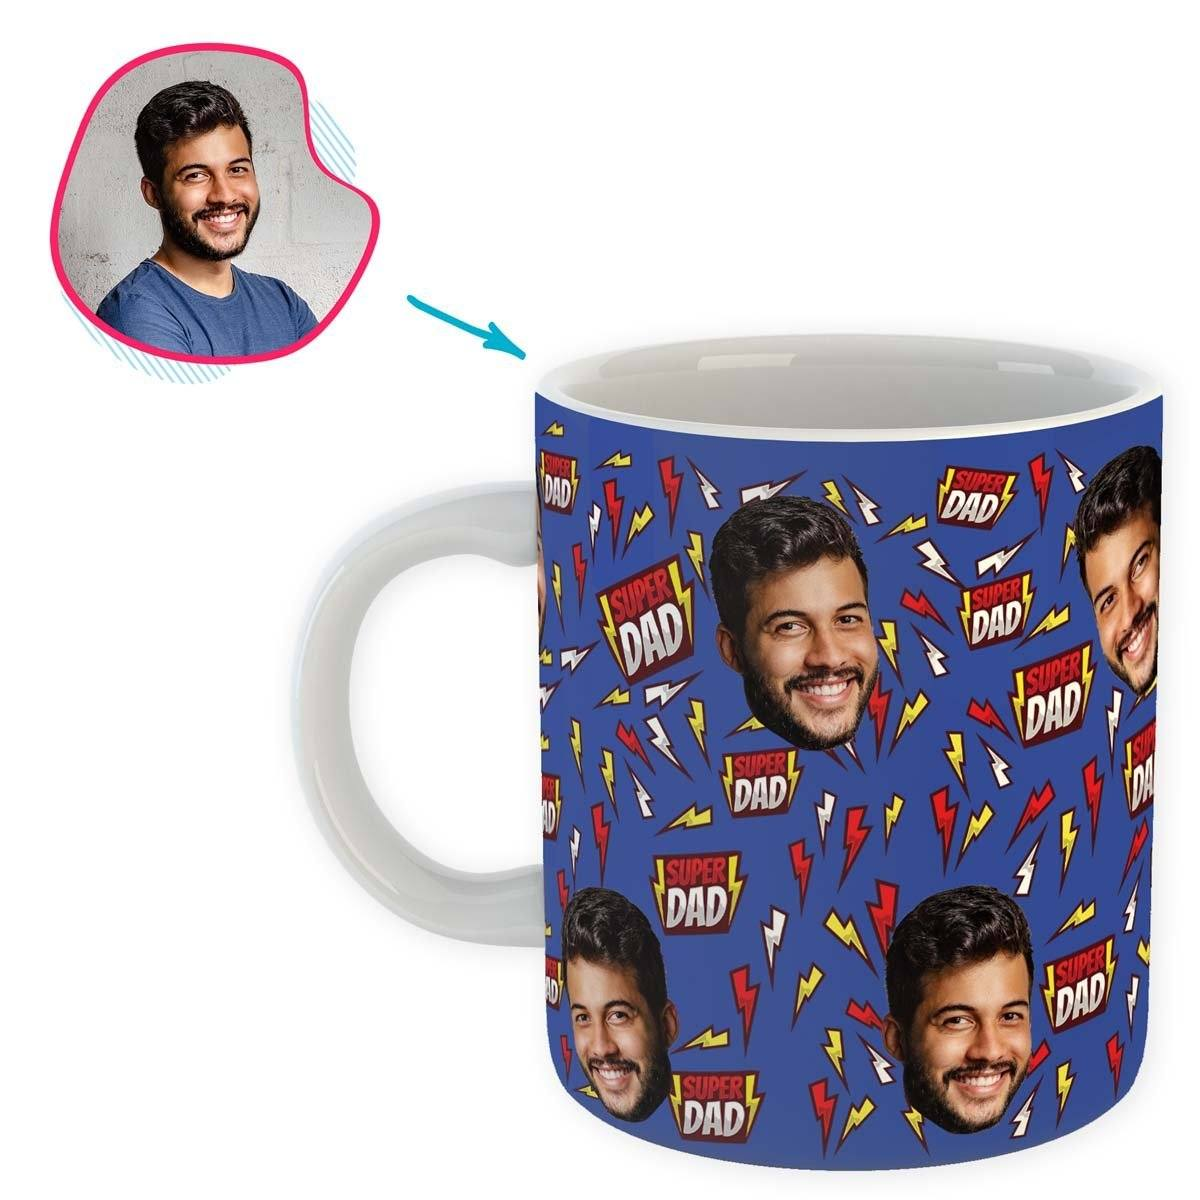 darkblue Super Dad mug personalized with photo of face printed on it